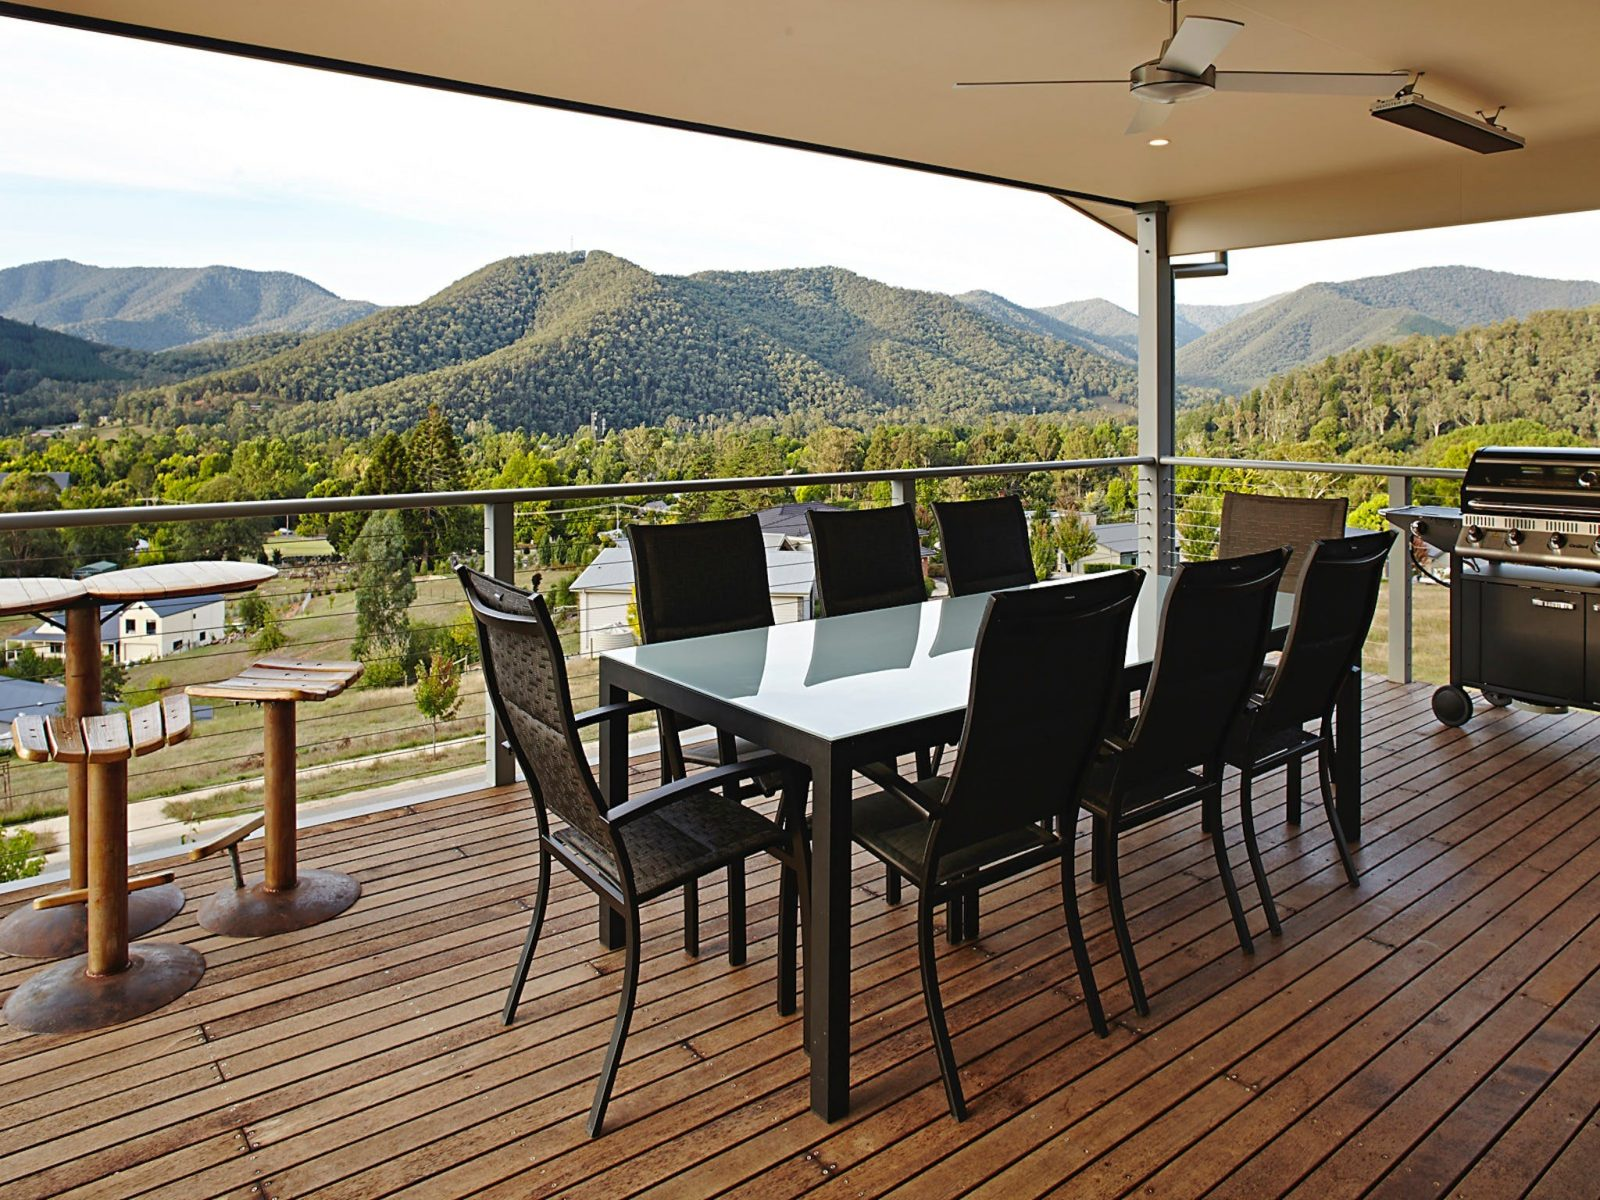 Aruma deck with barbecue and mountain views